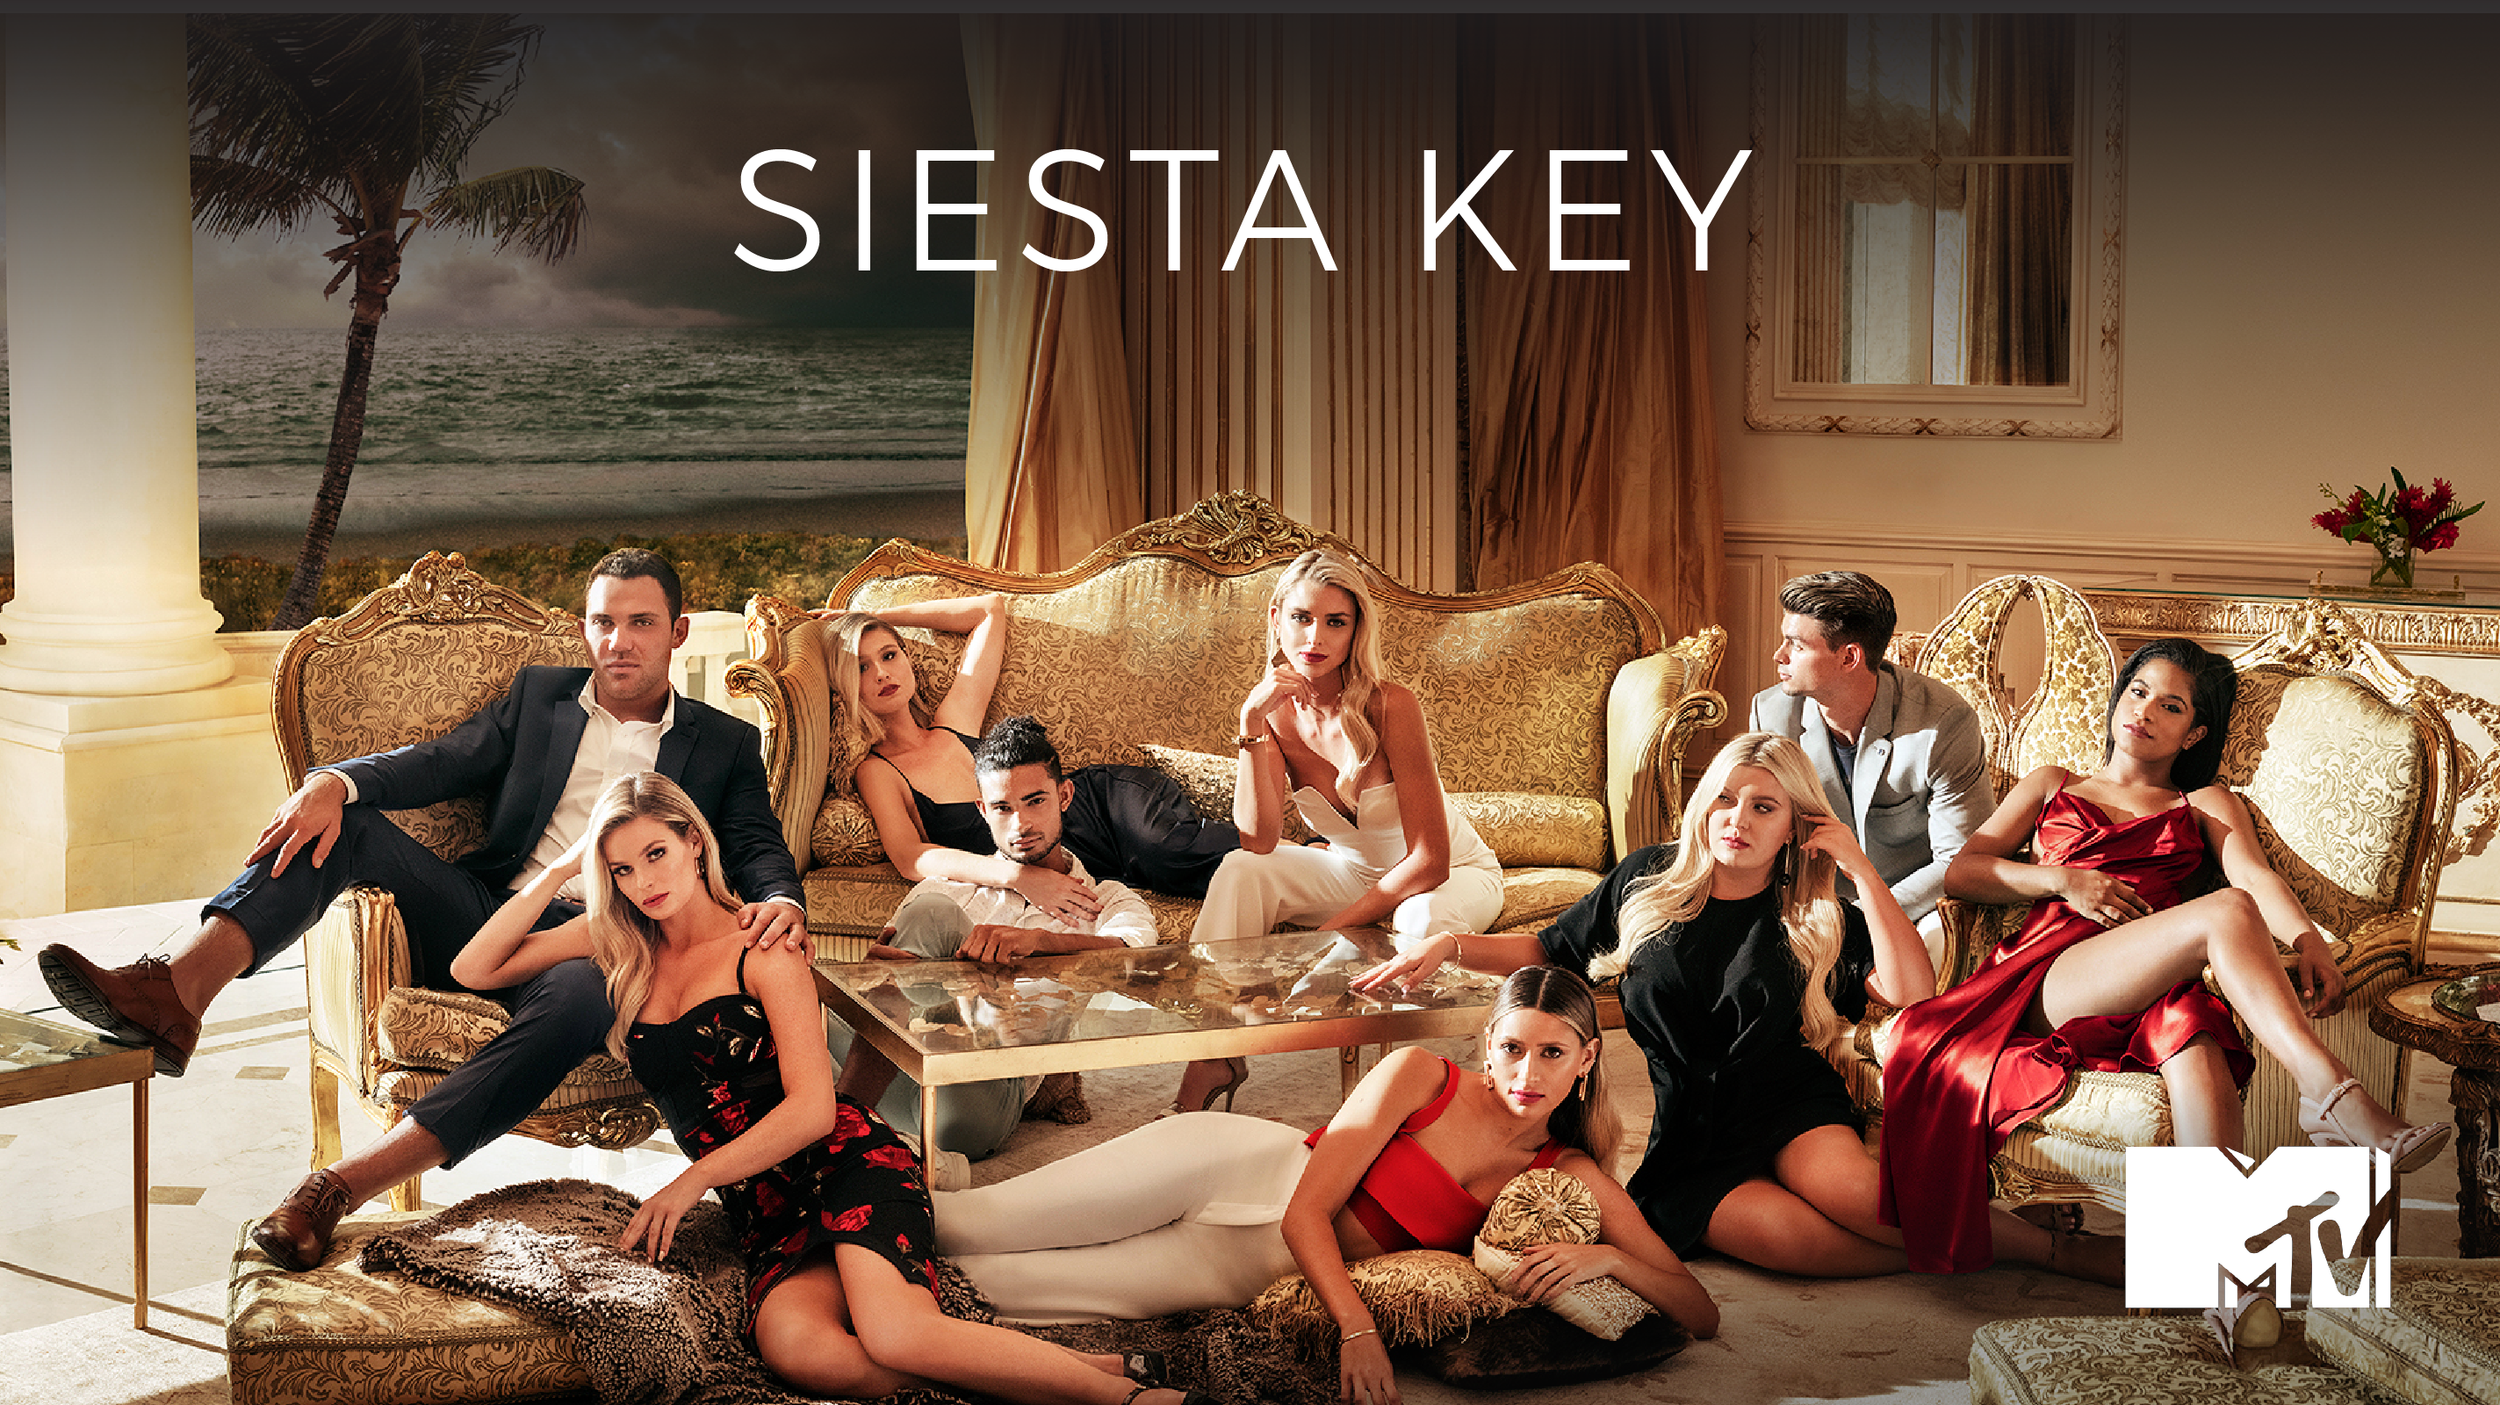 SIESTA KEY - MTV